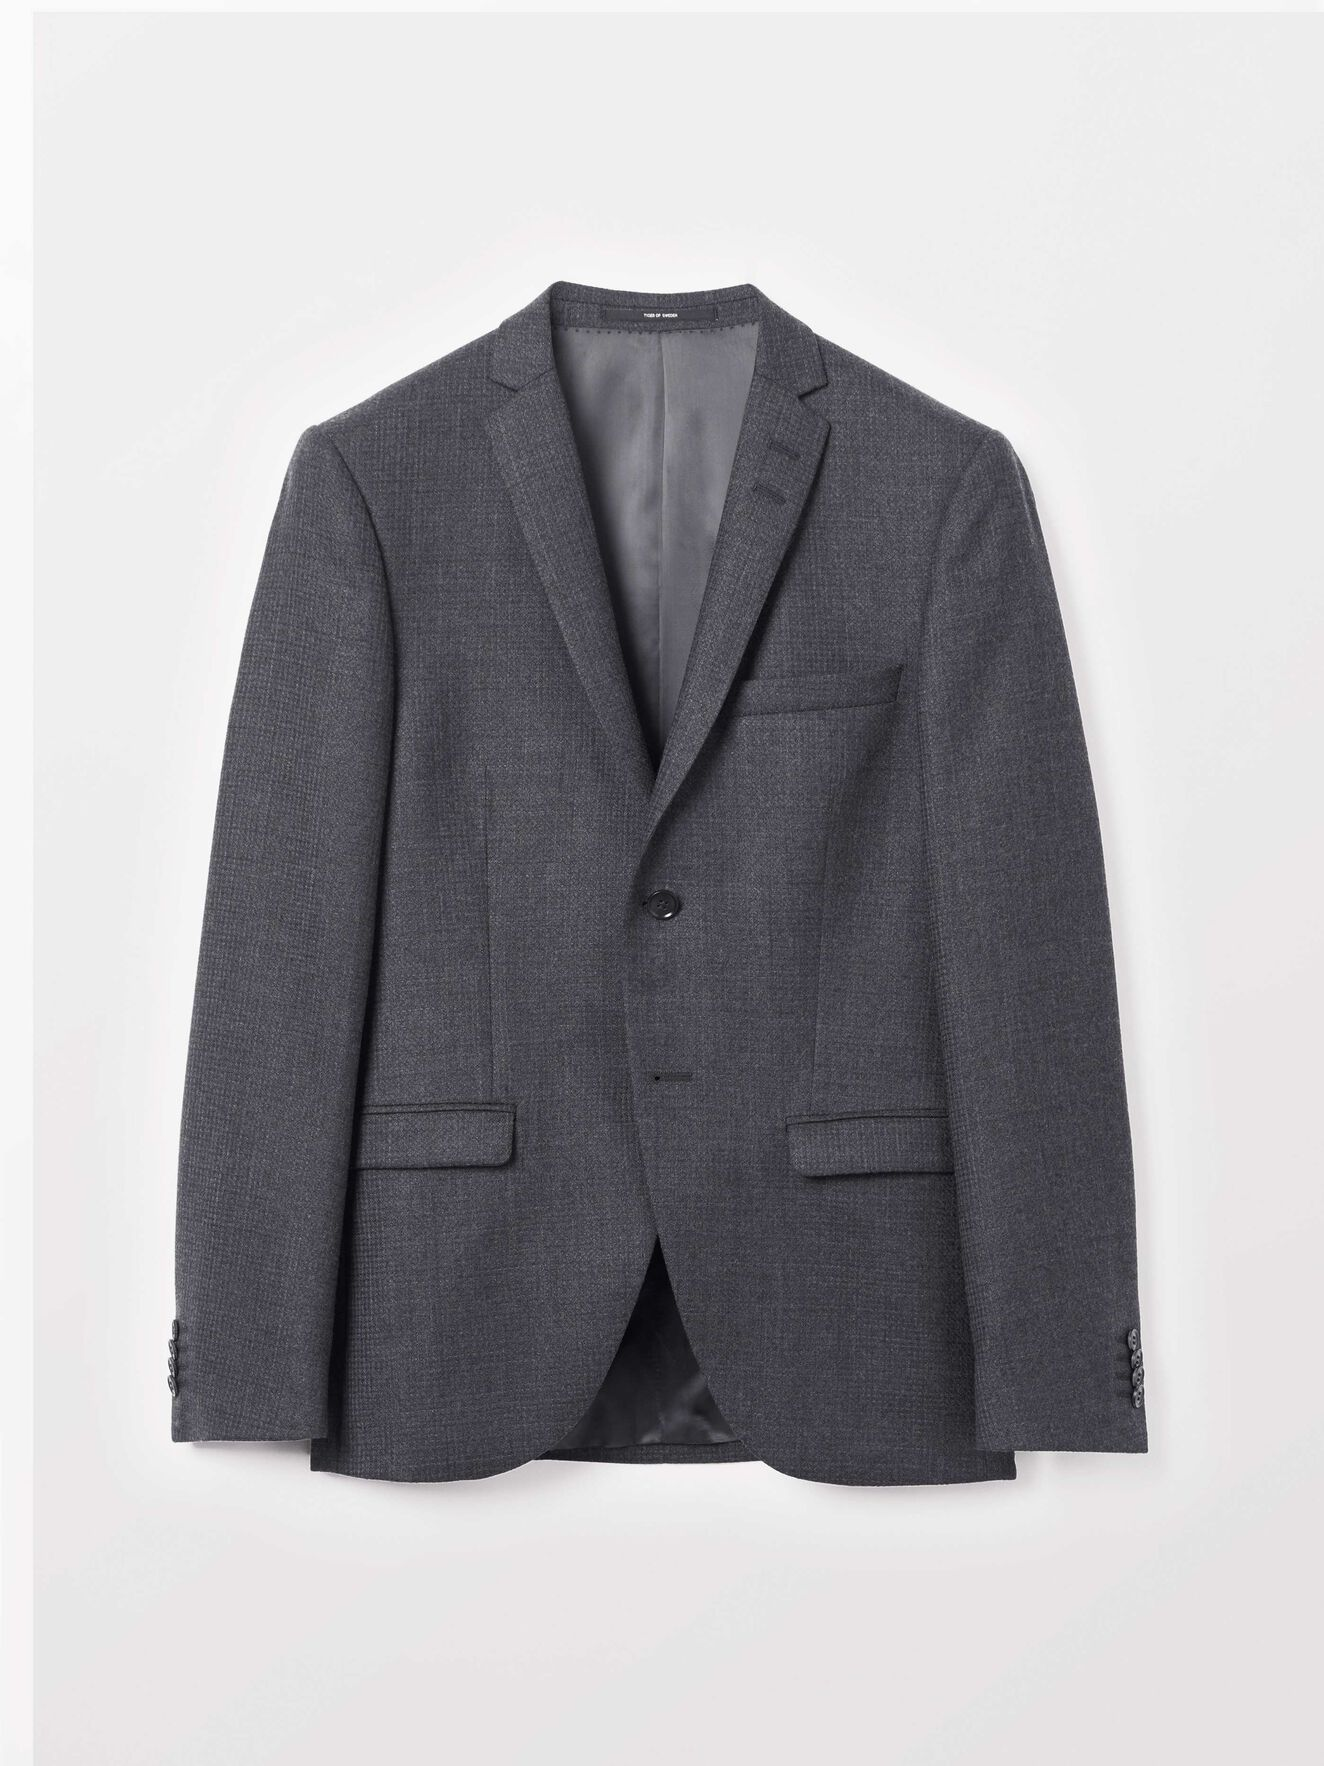 Jile Blazer in Iron Gate from Tiger of Sweden